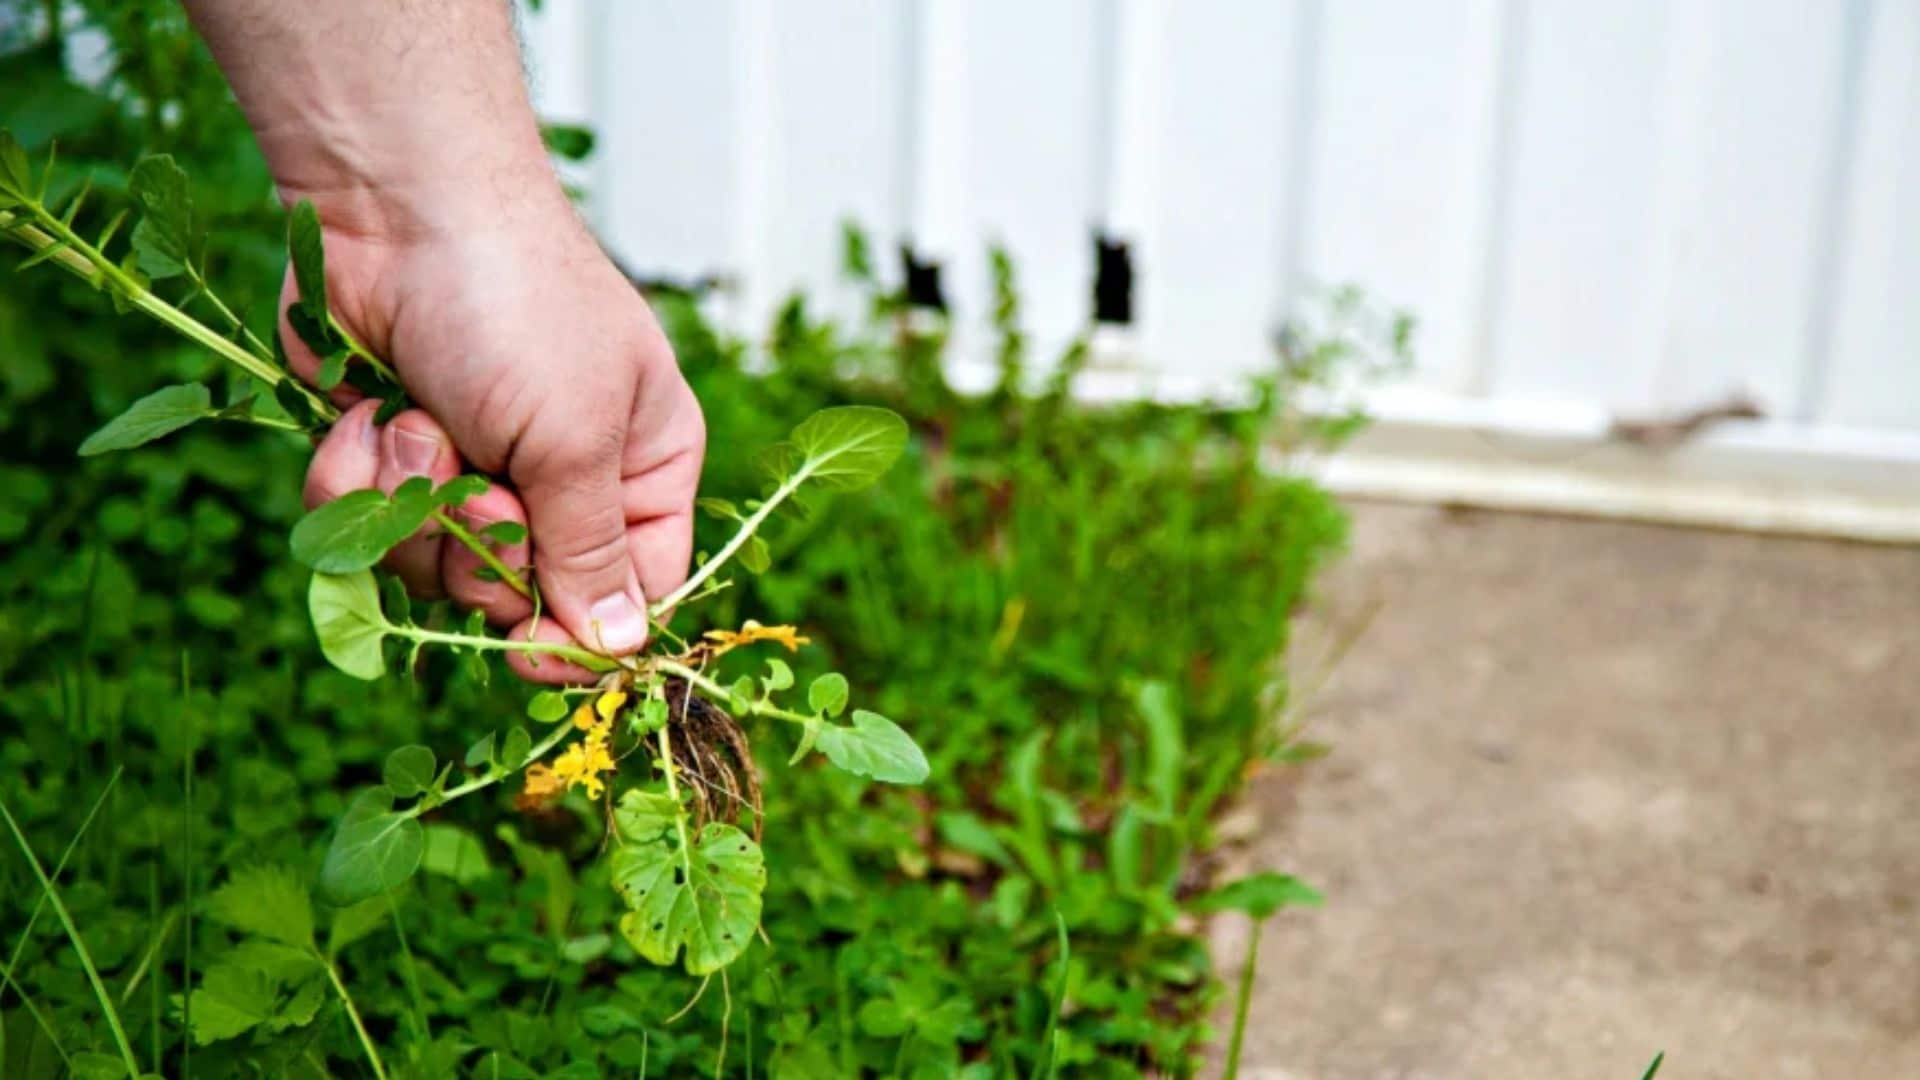 Kill Weed in Lawn